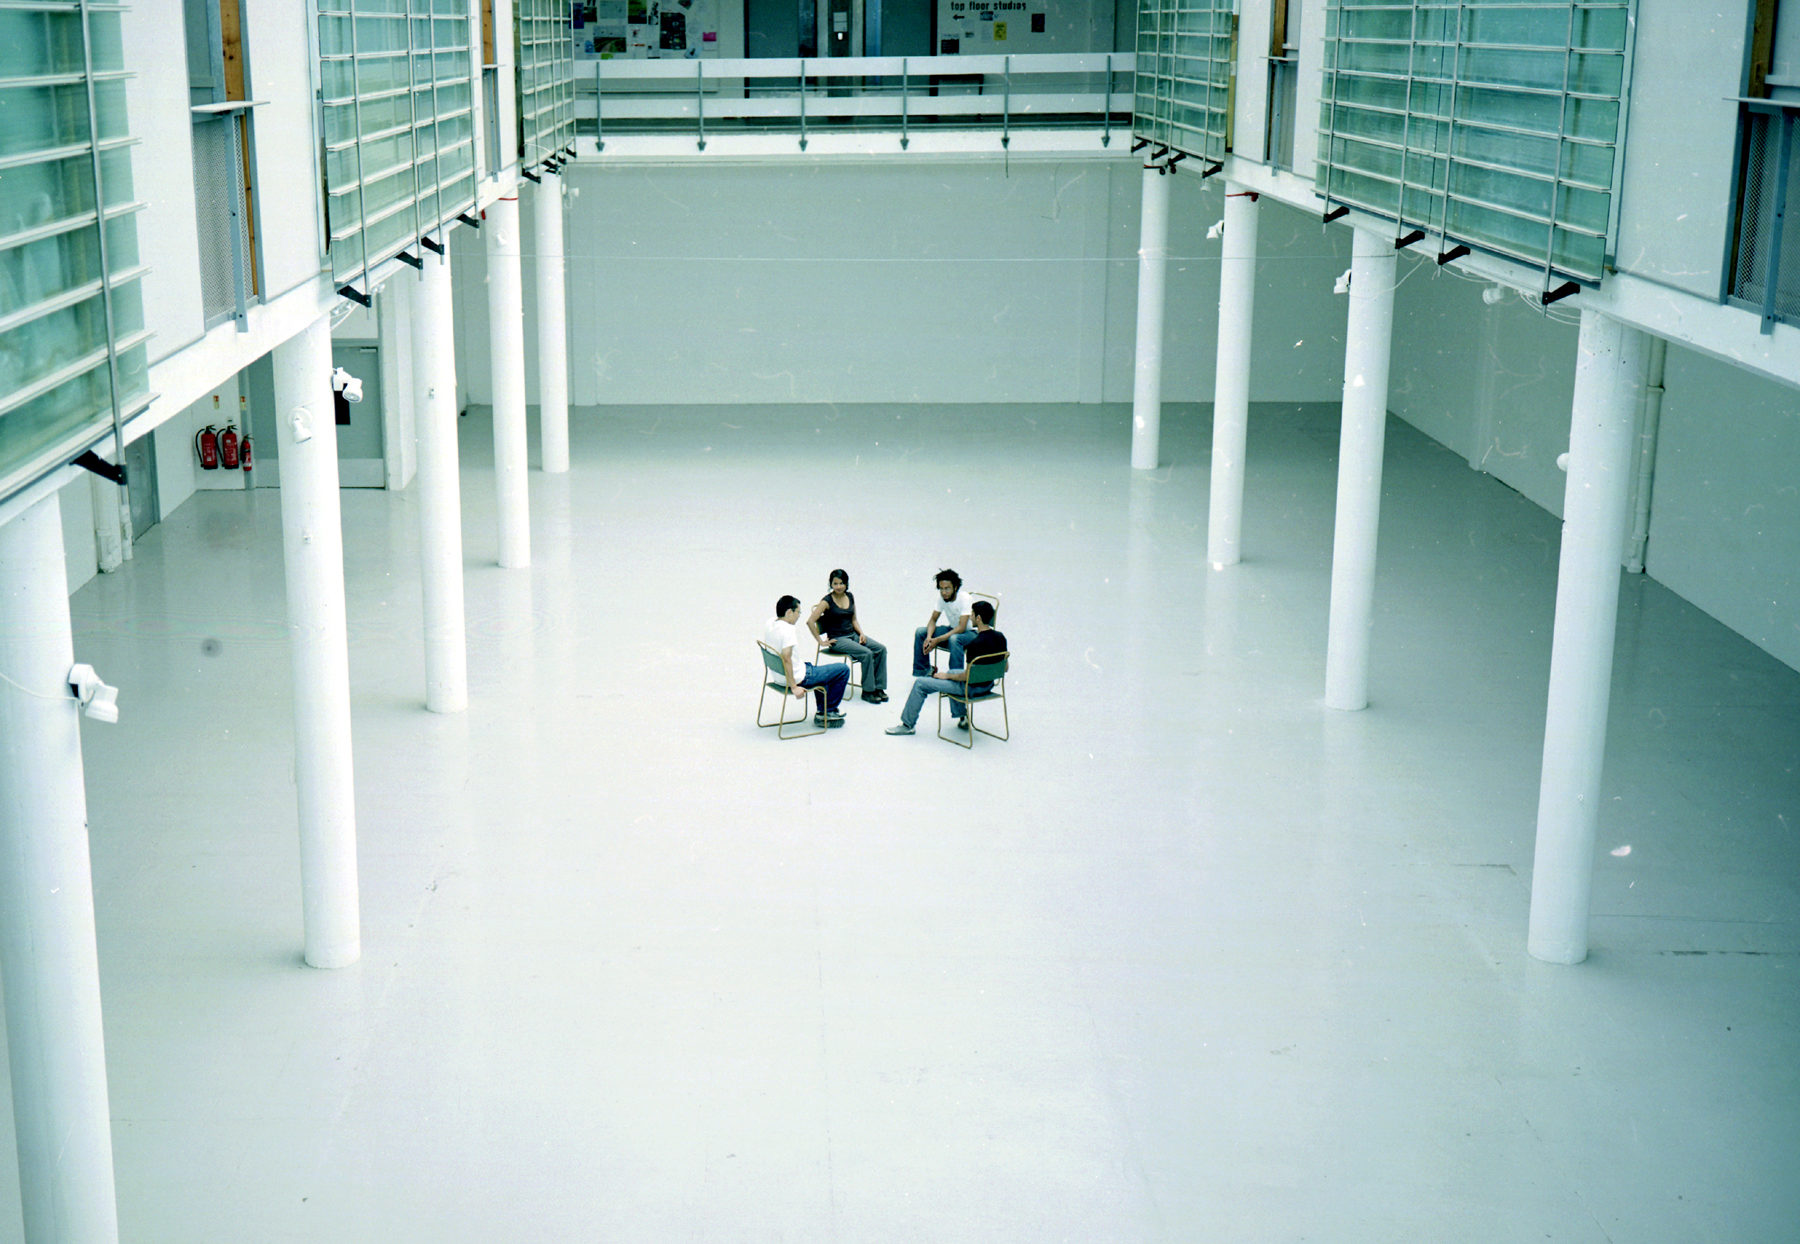 Installation view of Spin Cycle (2004). Four people sit on chairs facing one another in the centre of a white, bright gallery.